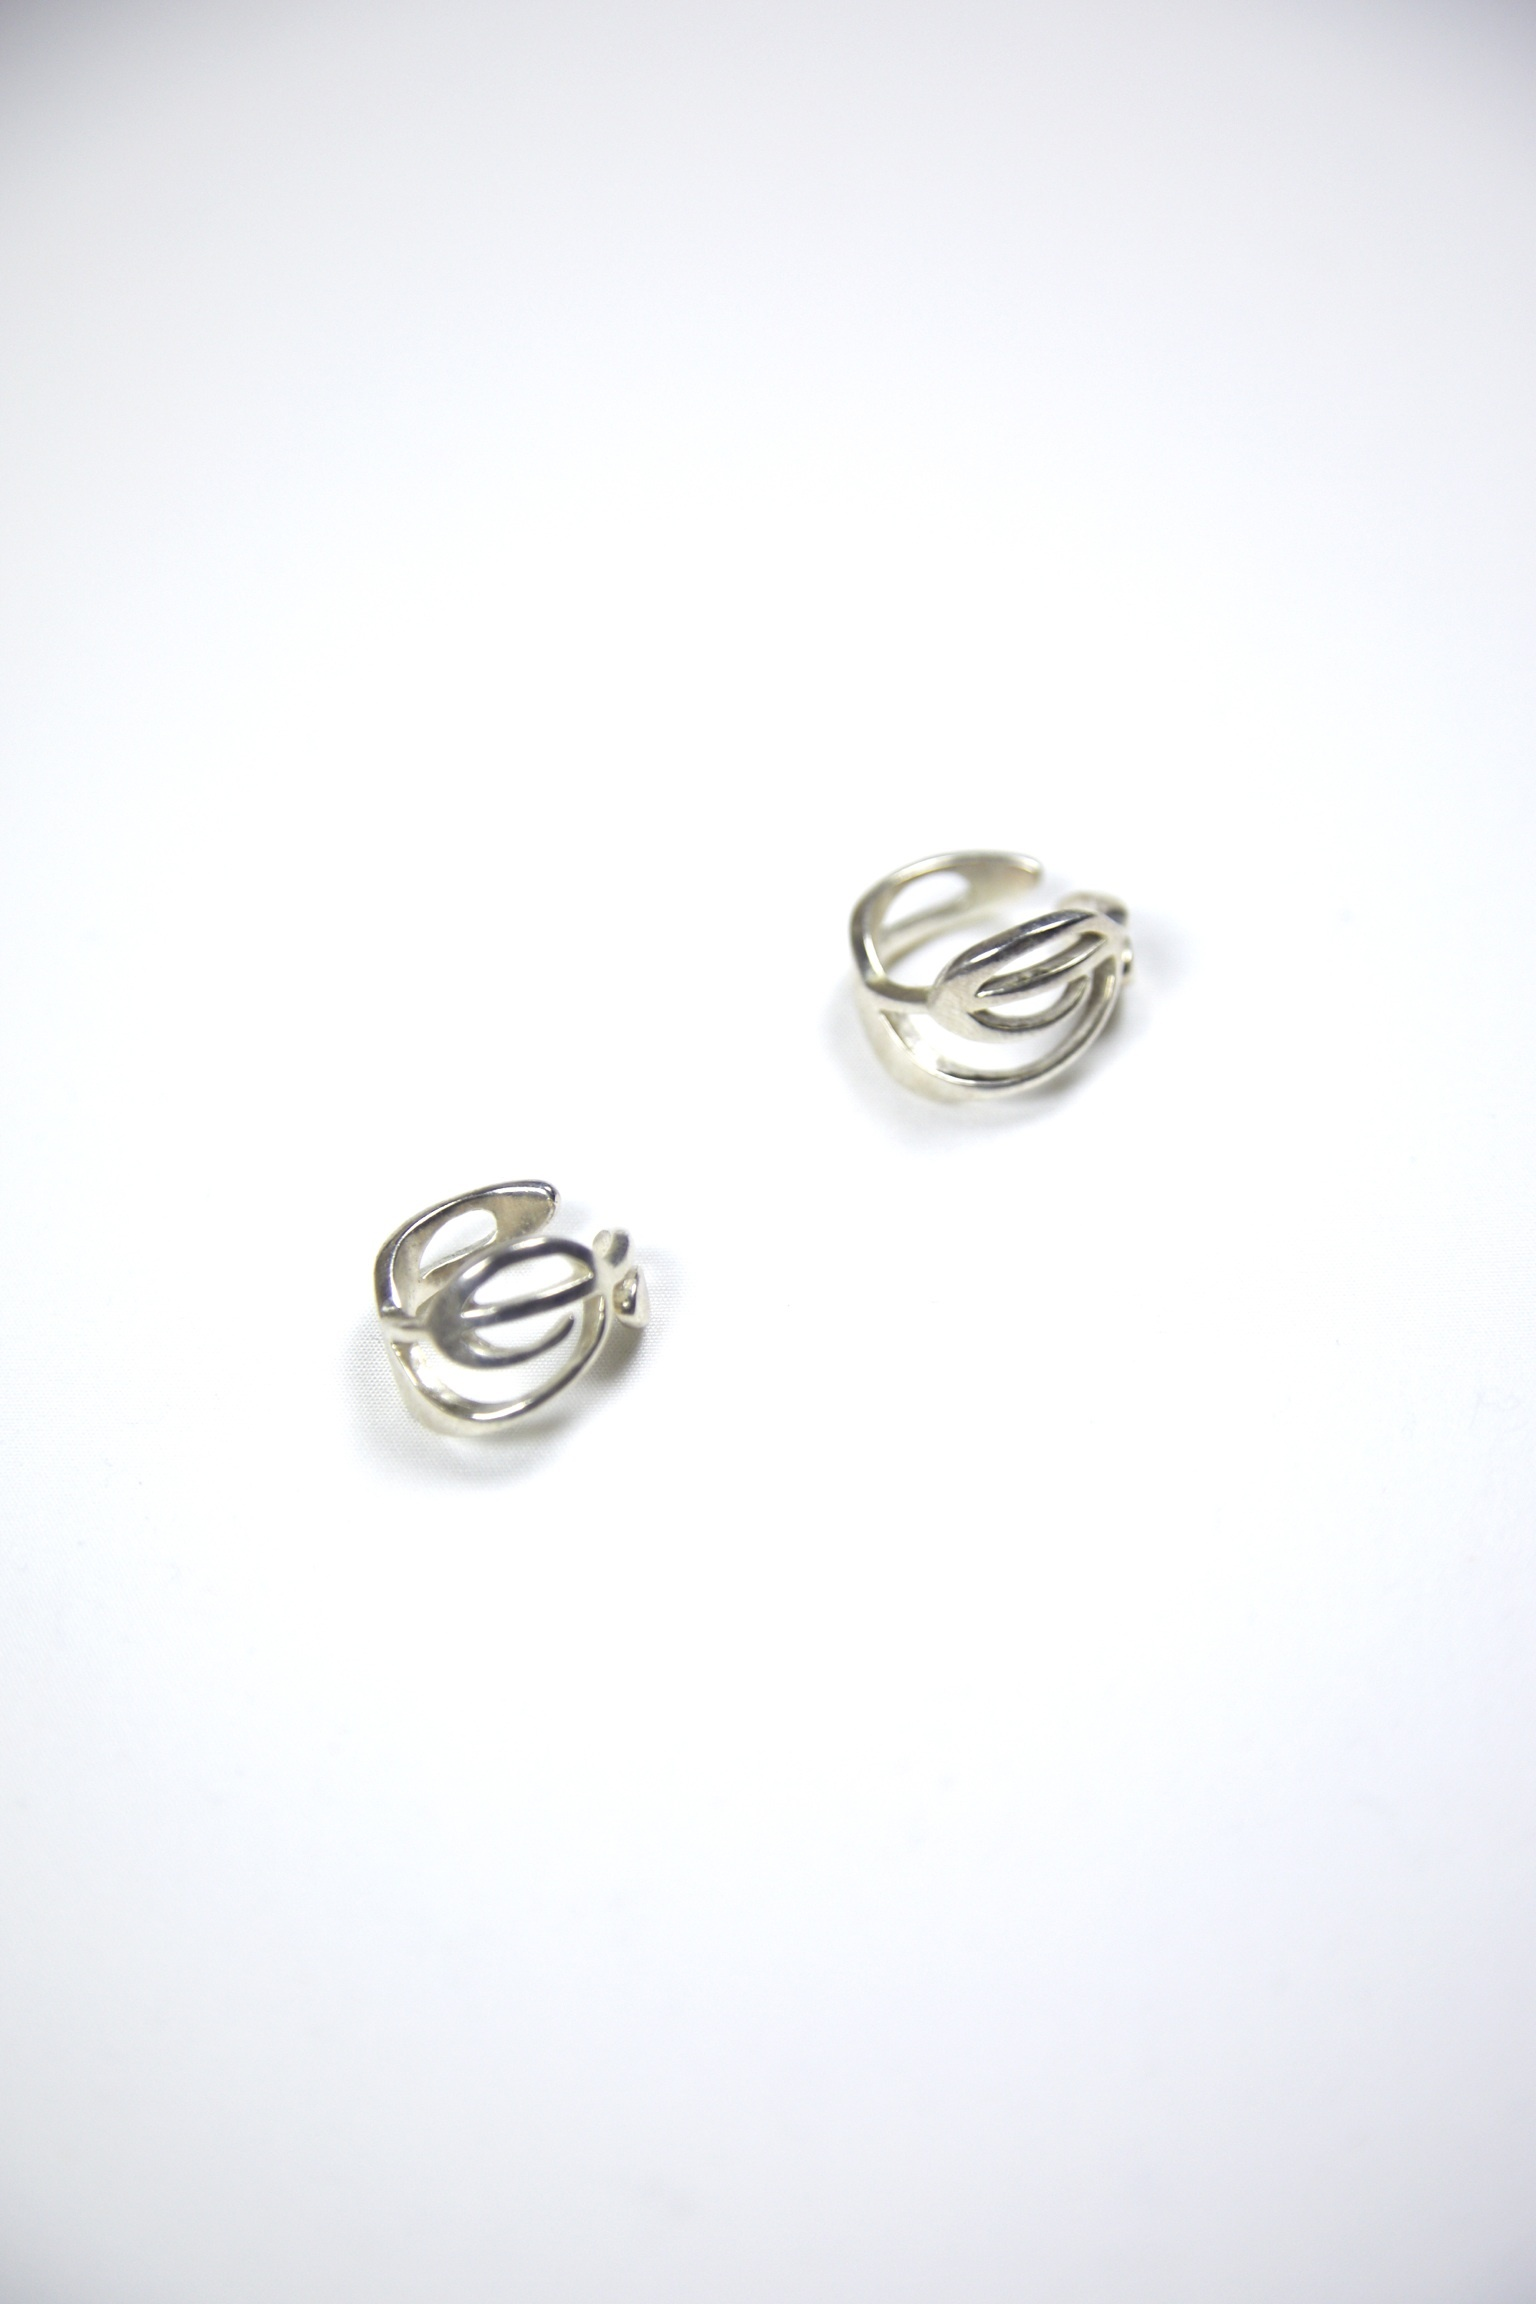 【HUMIS】CLASSICAL NOTE RING